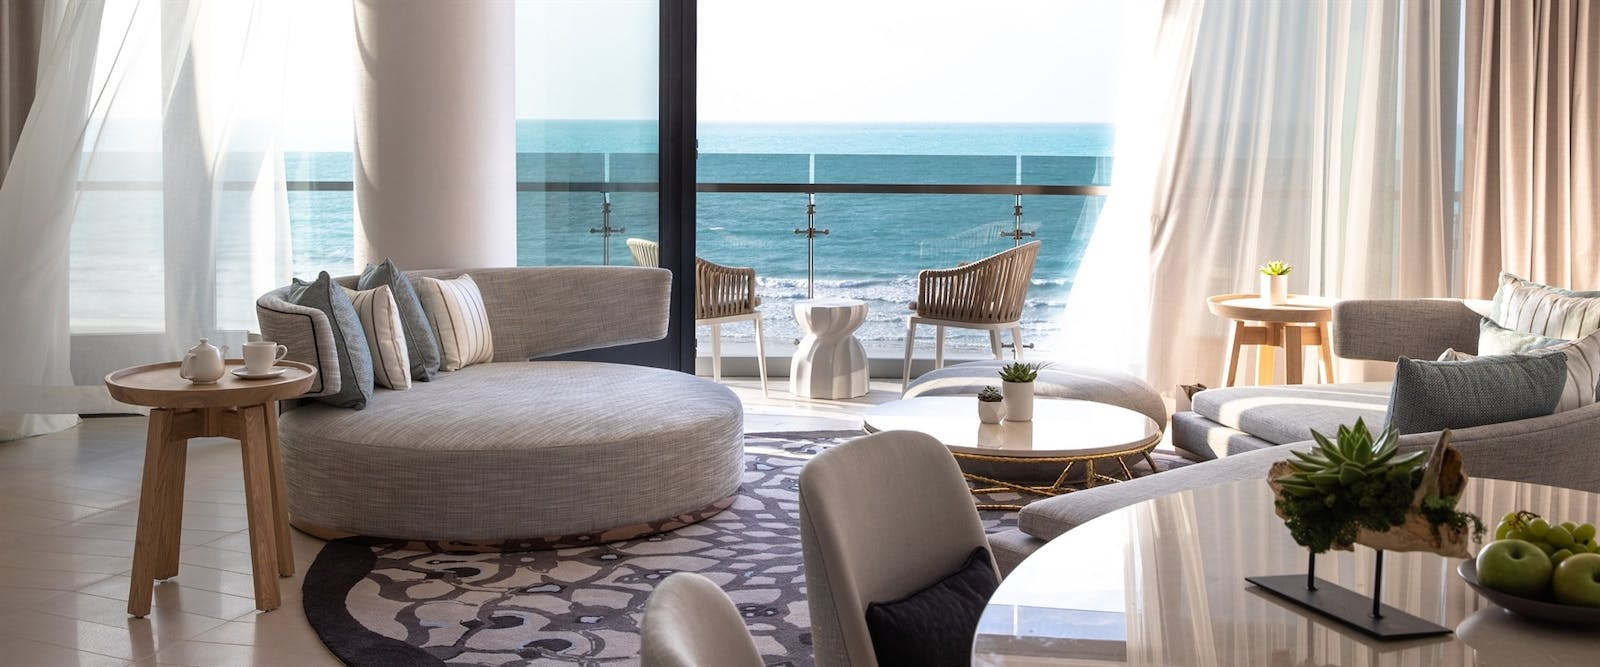 Panoramic Suite at Jumeirah at Saadiyat Island Resort, Abu Dhabi